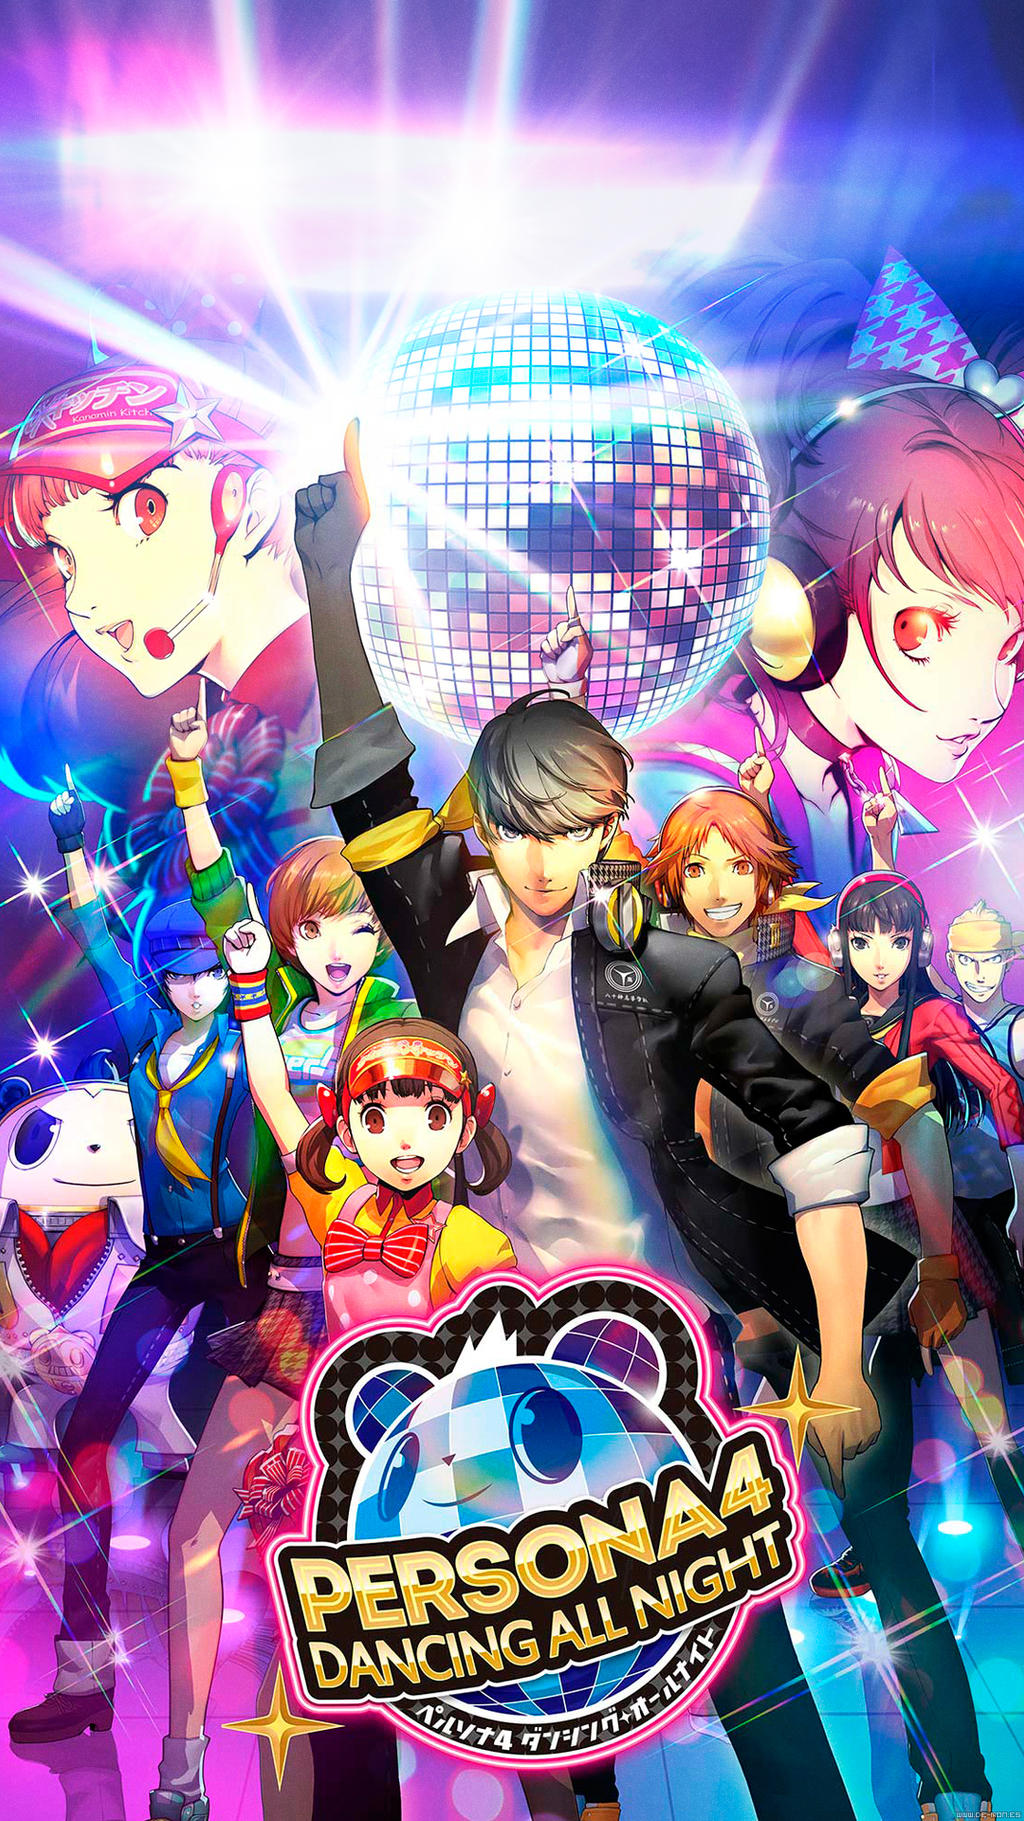 Persona 4 Dancing All Night Smartphone Wallpaper By De Monvarela